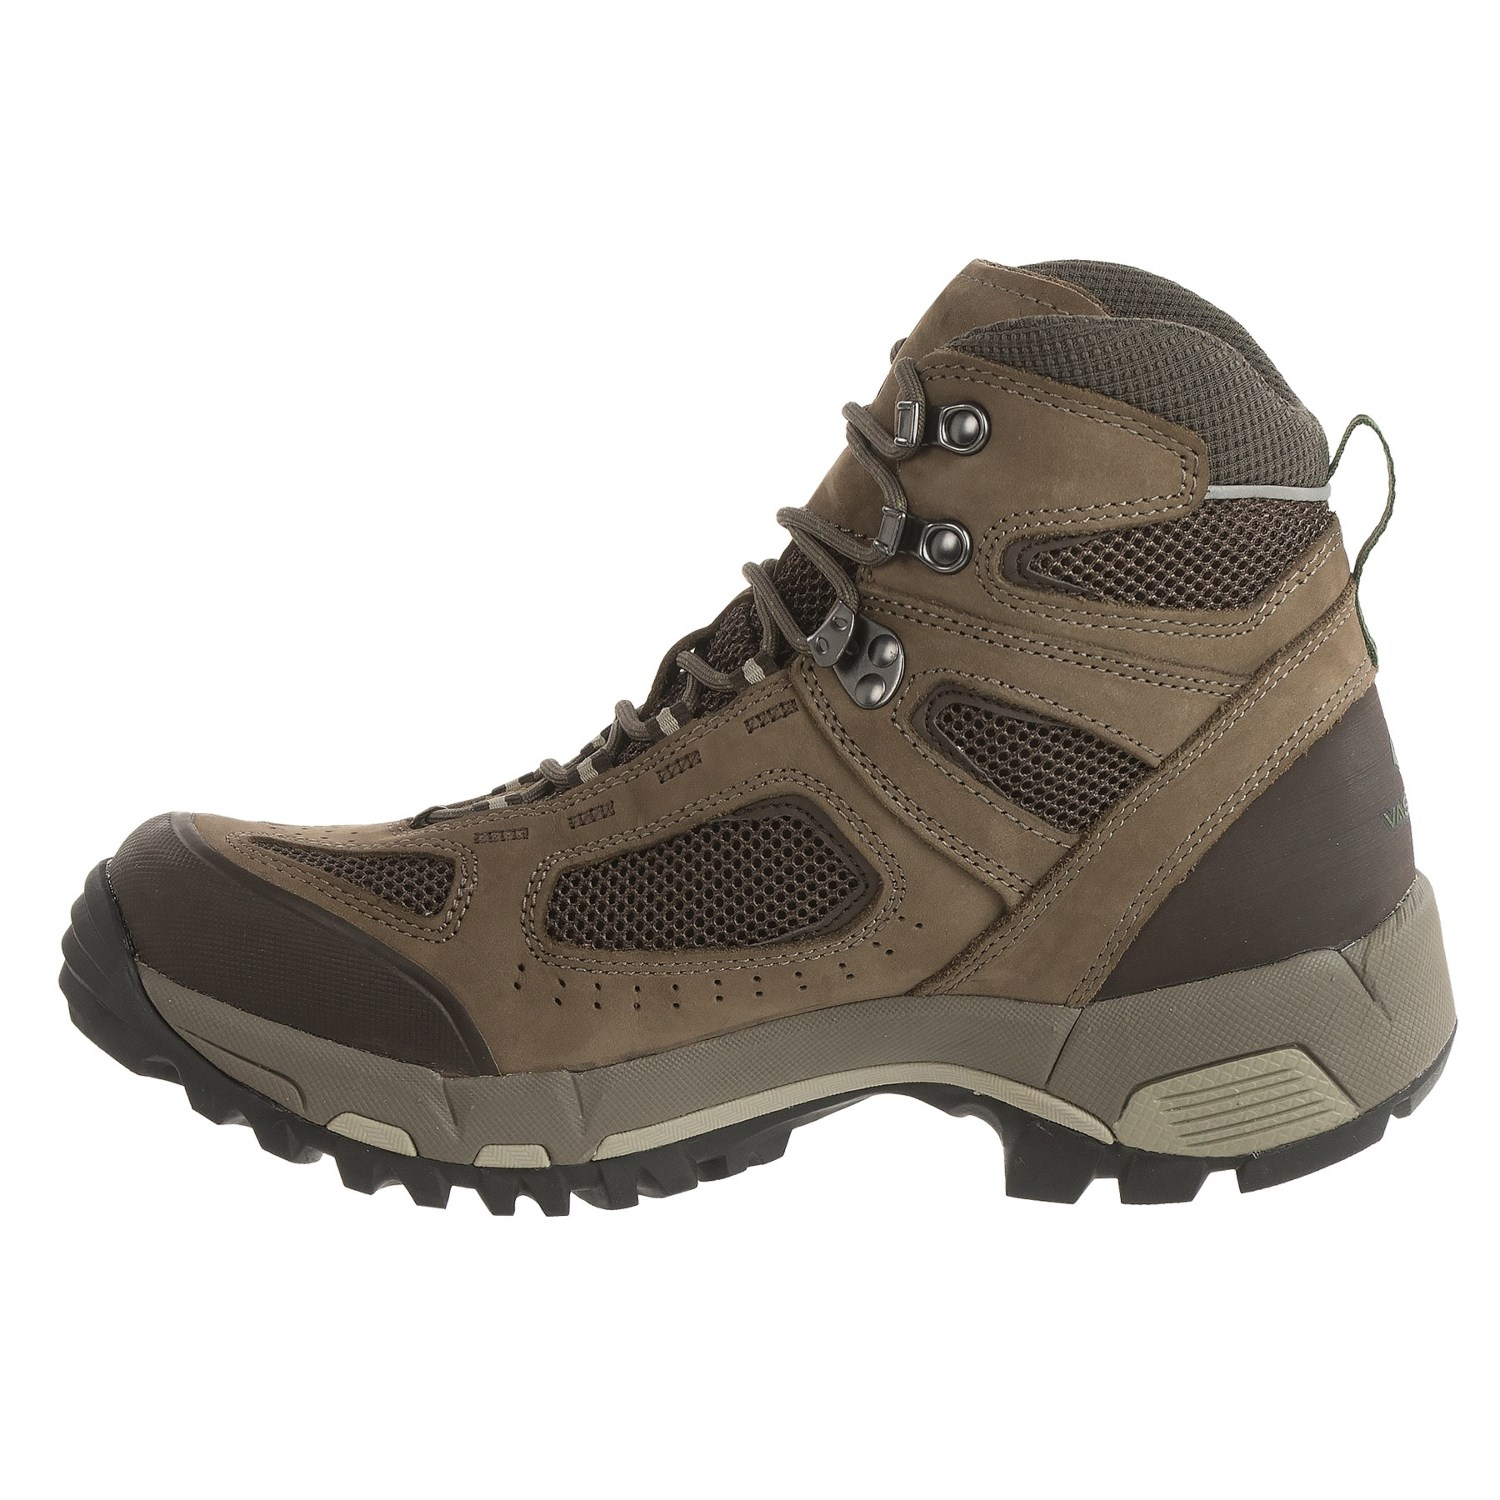 vasque breeze 2 0 hiking boots for men save 46. Black Bedroom Furniture Sets. Home Design Ideas